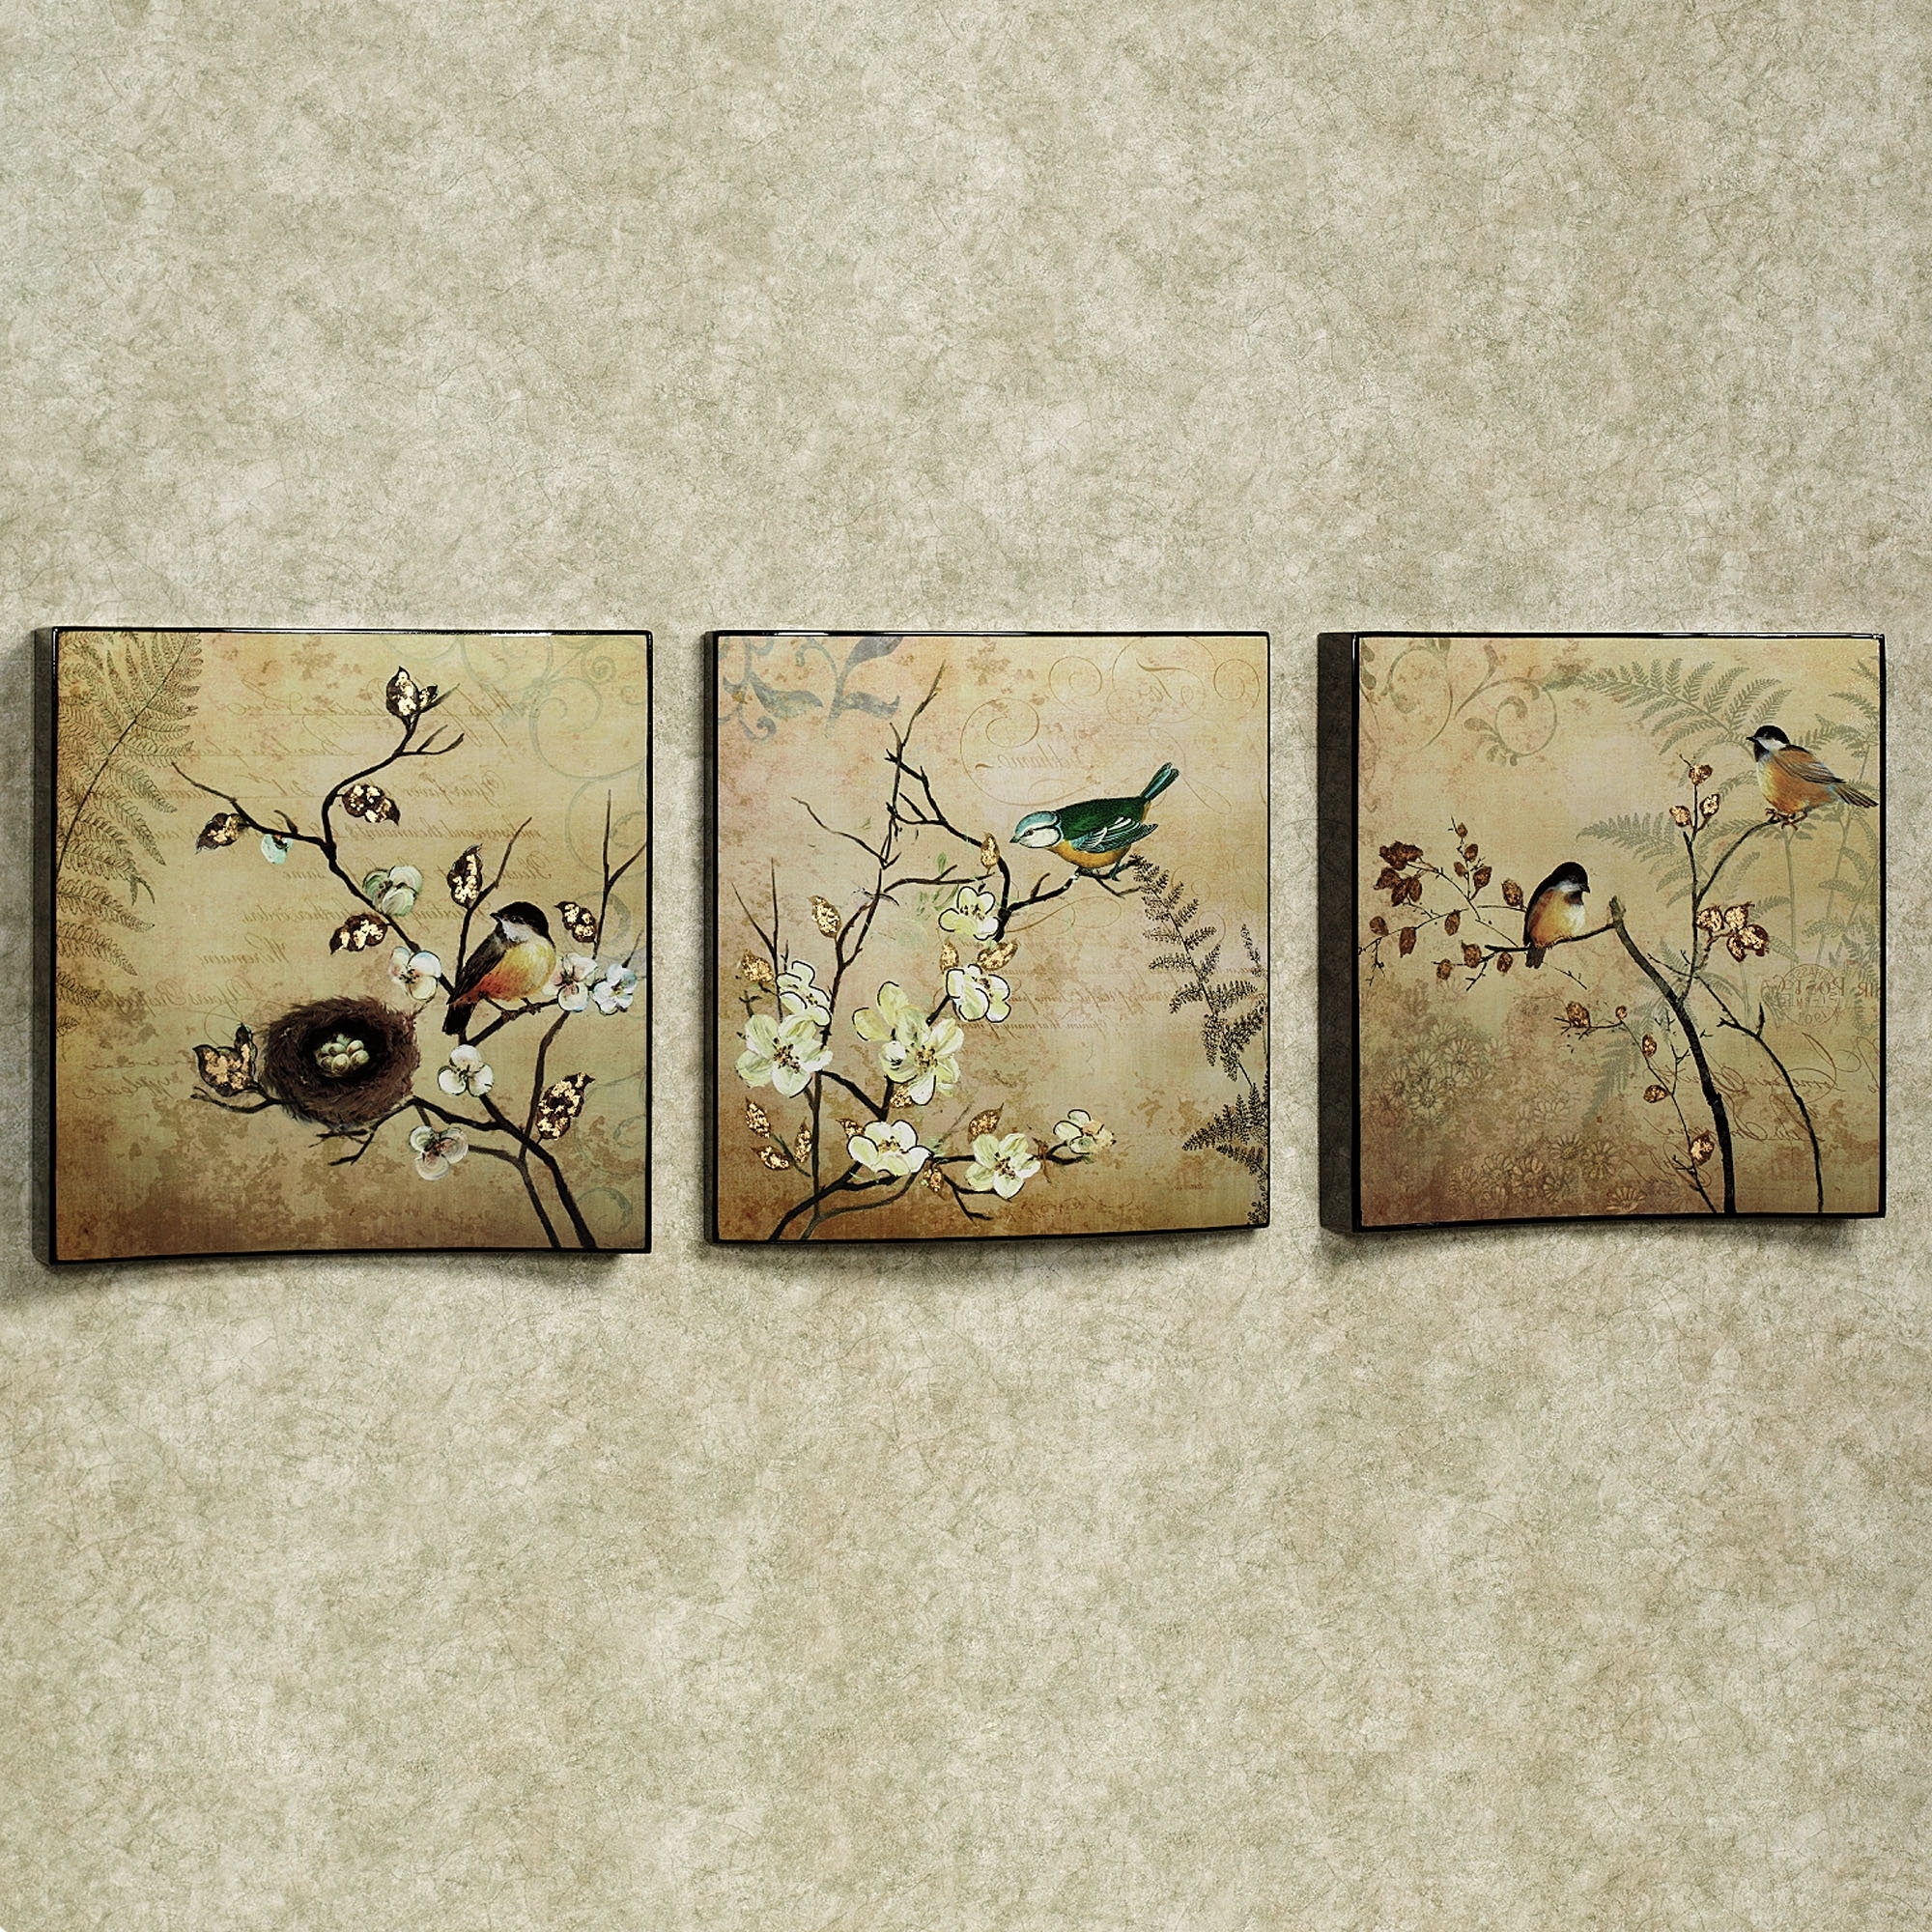 Vintage Style Wall Art Regarding Well Known Wall Art Ideas Design : Vintage Style Wall Art Set Of Three Nature (Gallery 2 of 15)